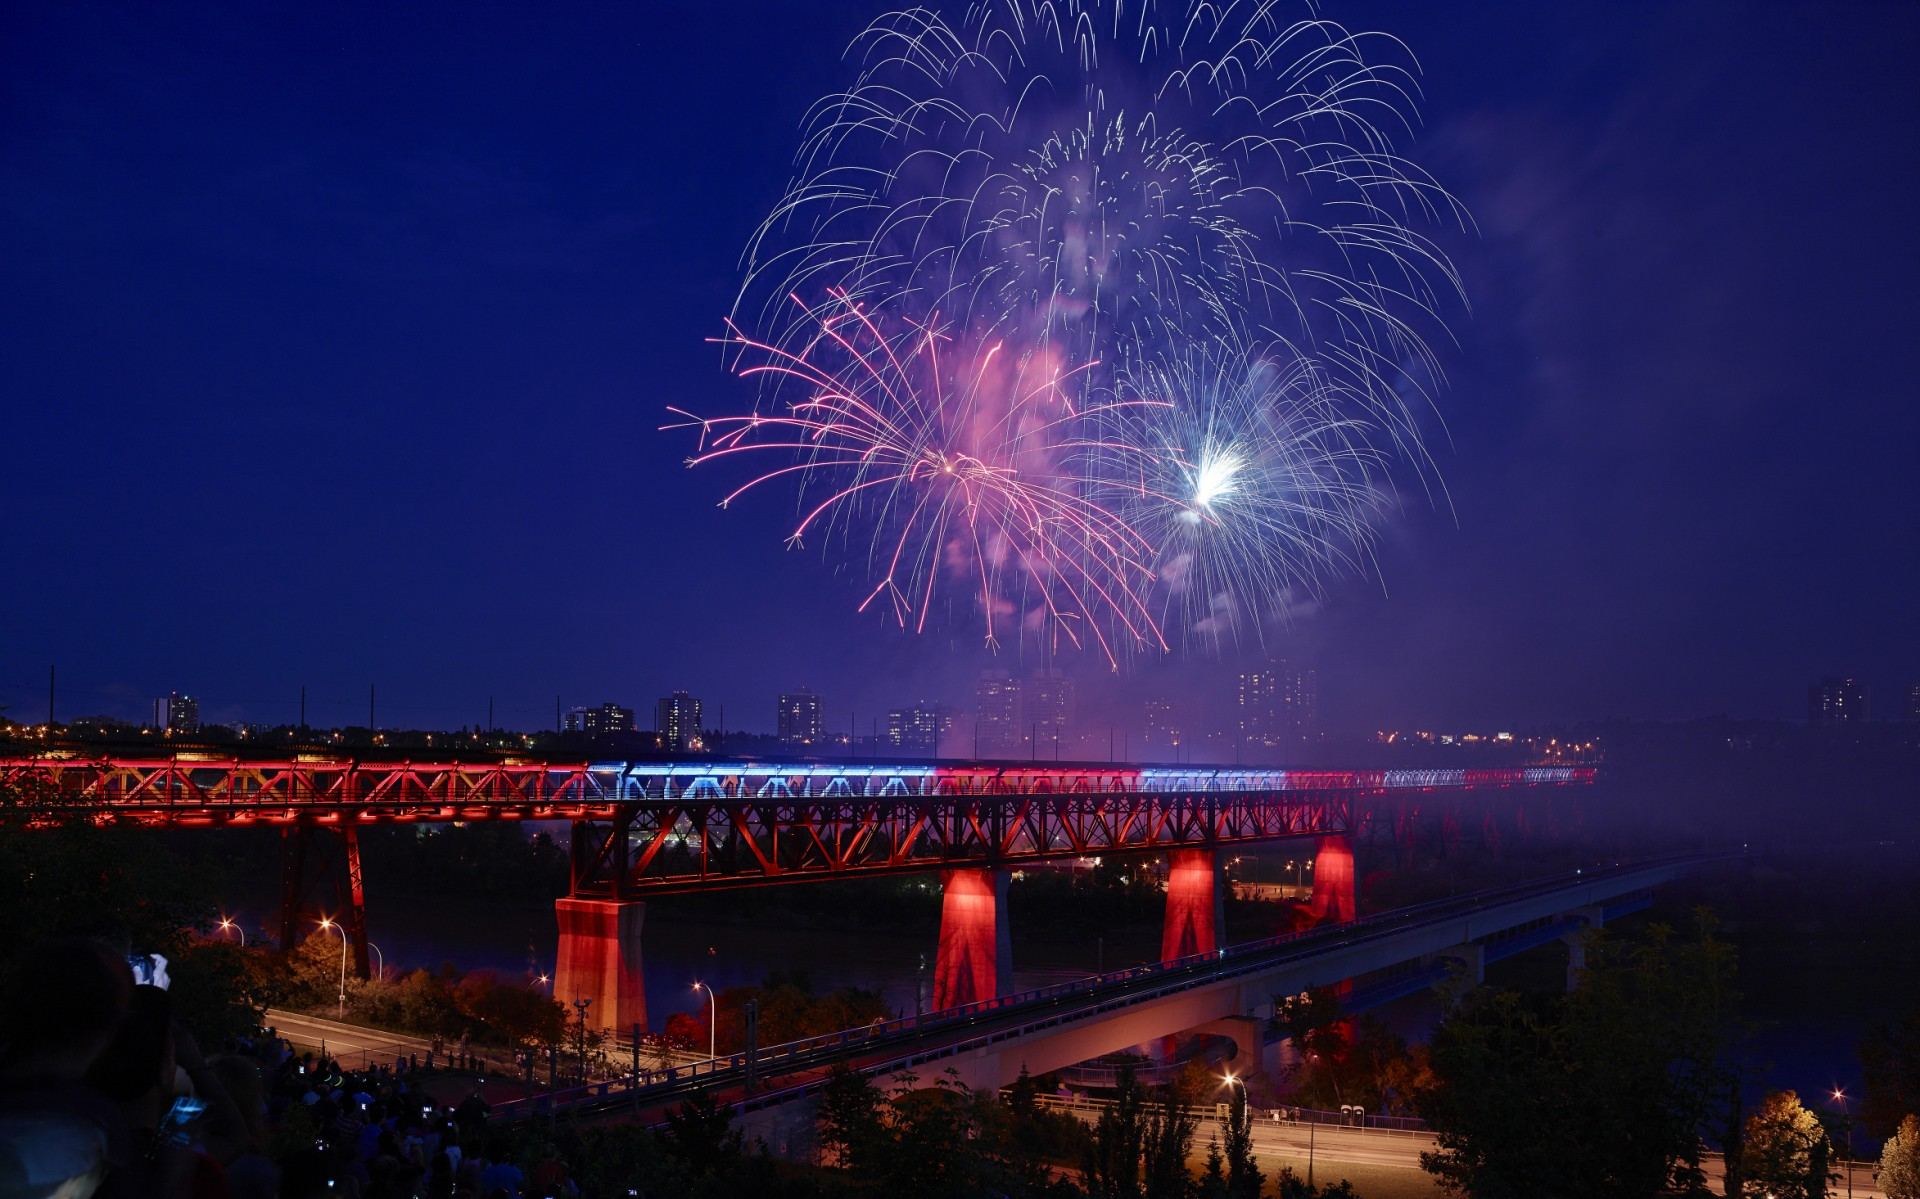 Including the Canada Day unveiling of the newly lit High Level Bridge.